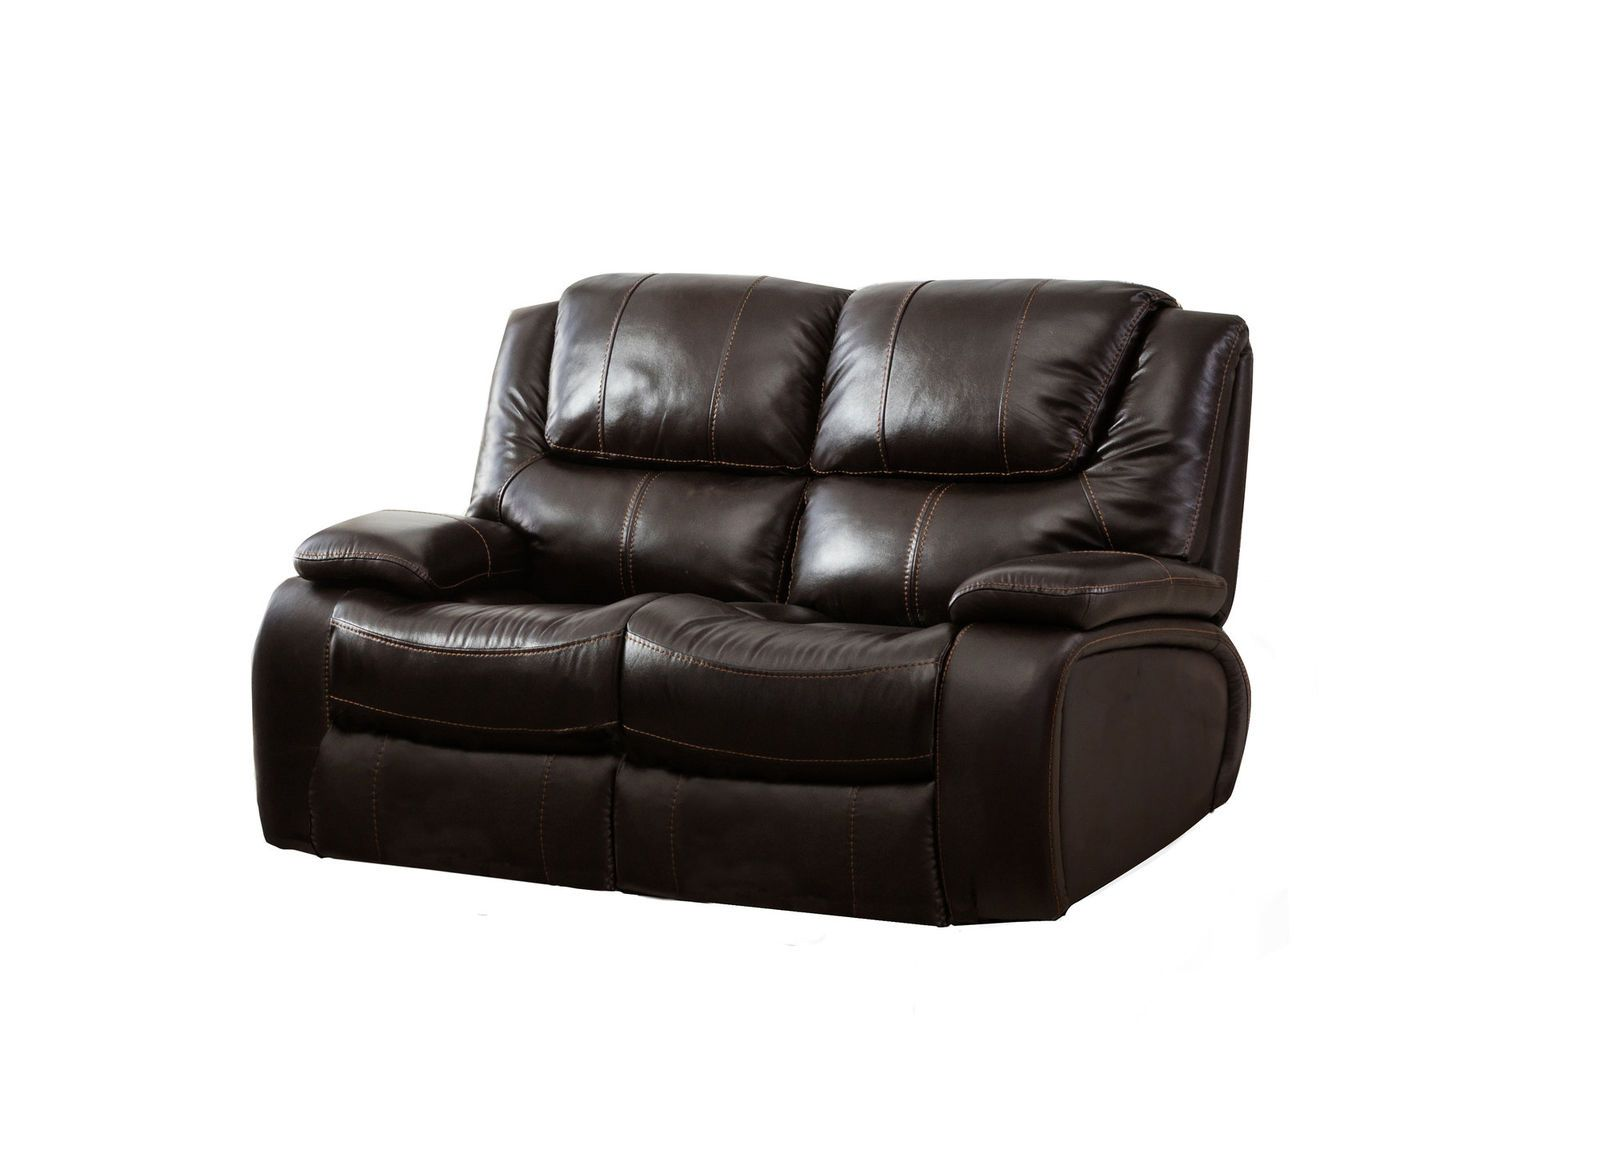 849 99 Red Barrel Studio Hille Leather Reclining Loveseat Barrel Studio Leather Reclining Lo Leather Reclining Loveseat Love Seat Red Barrel Studio